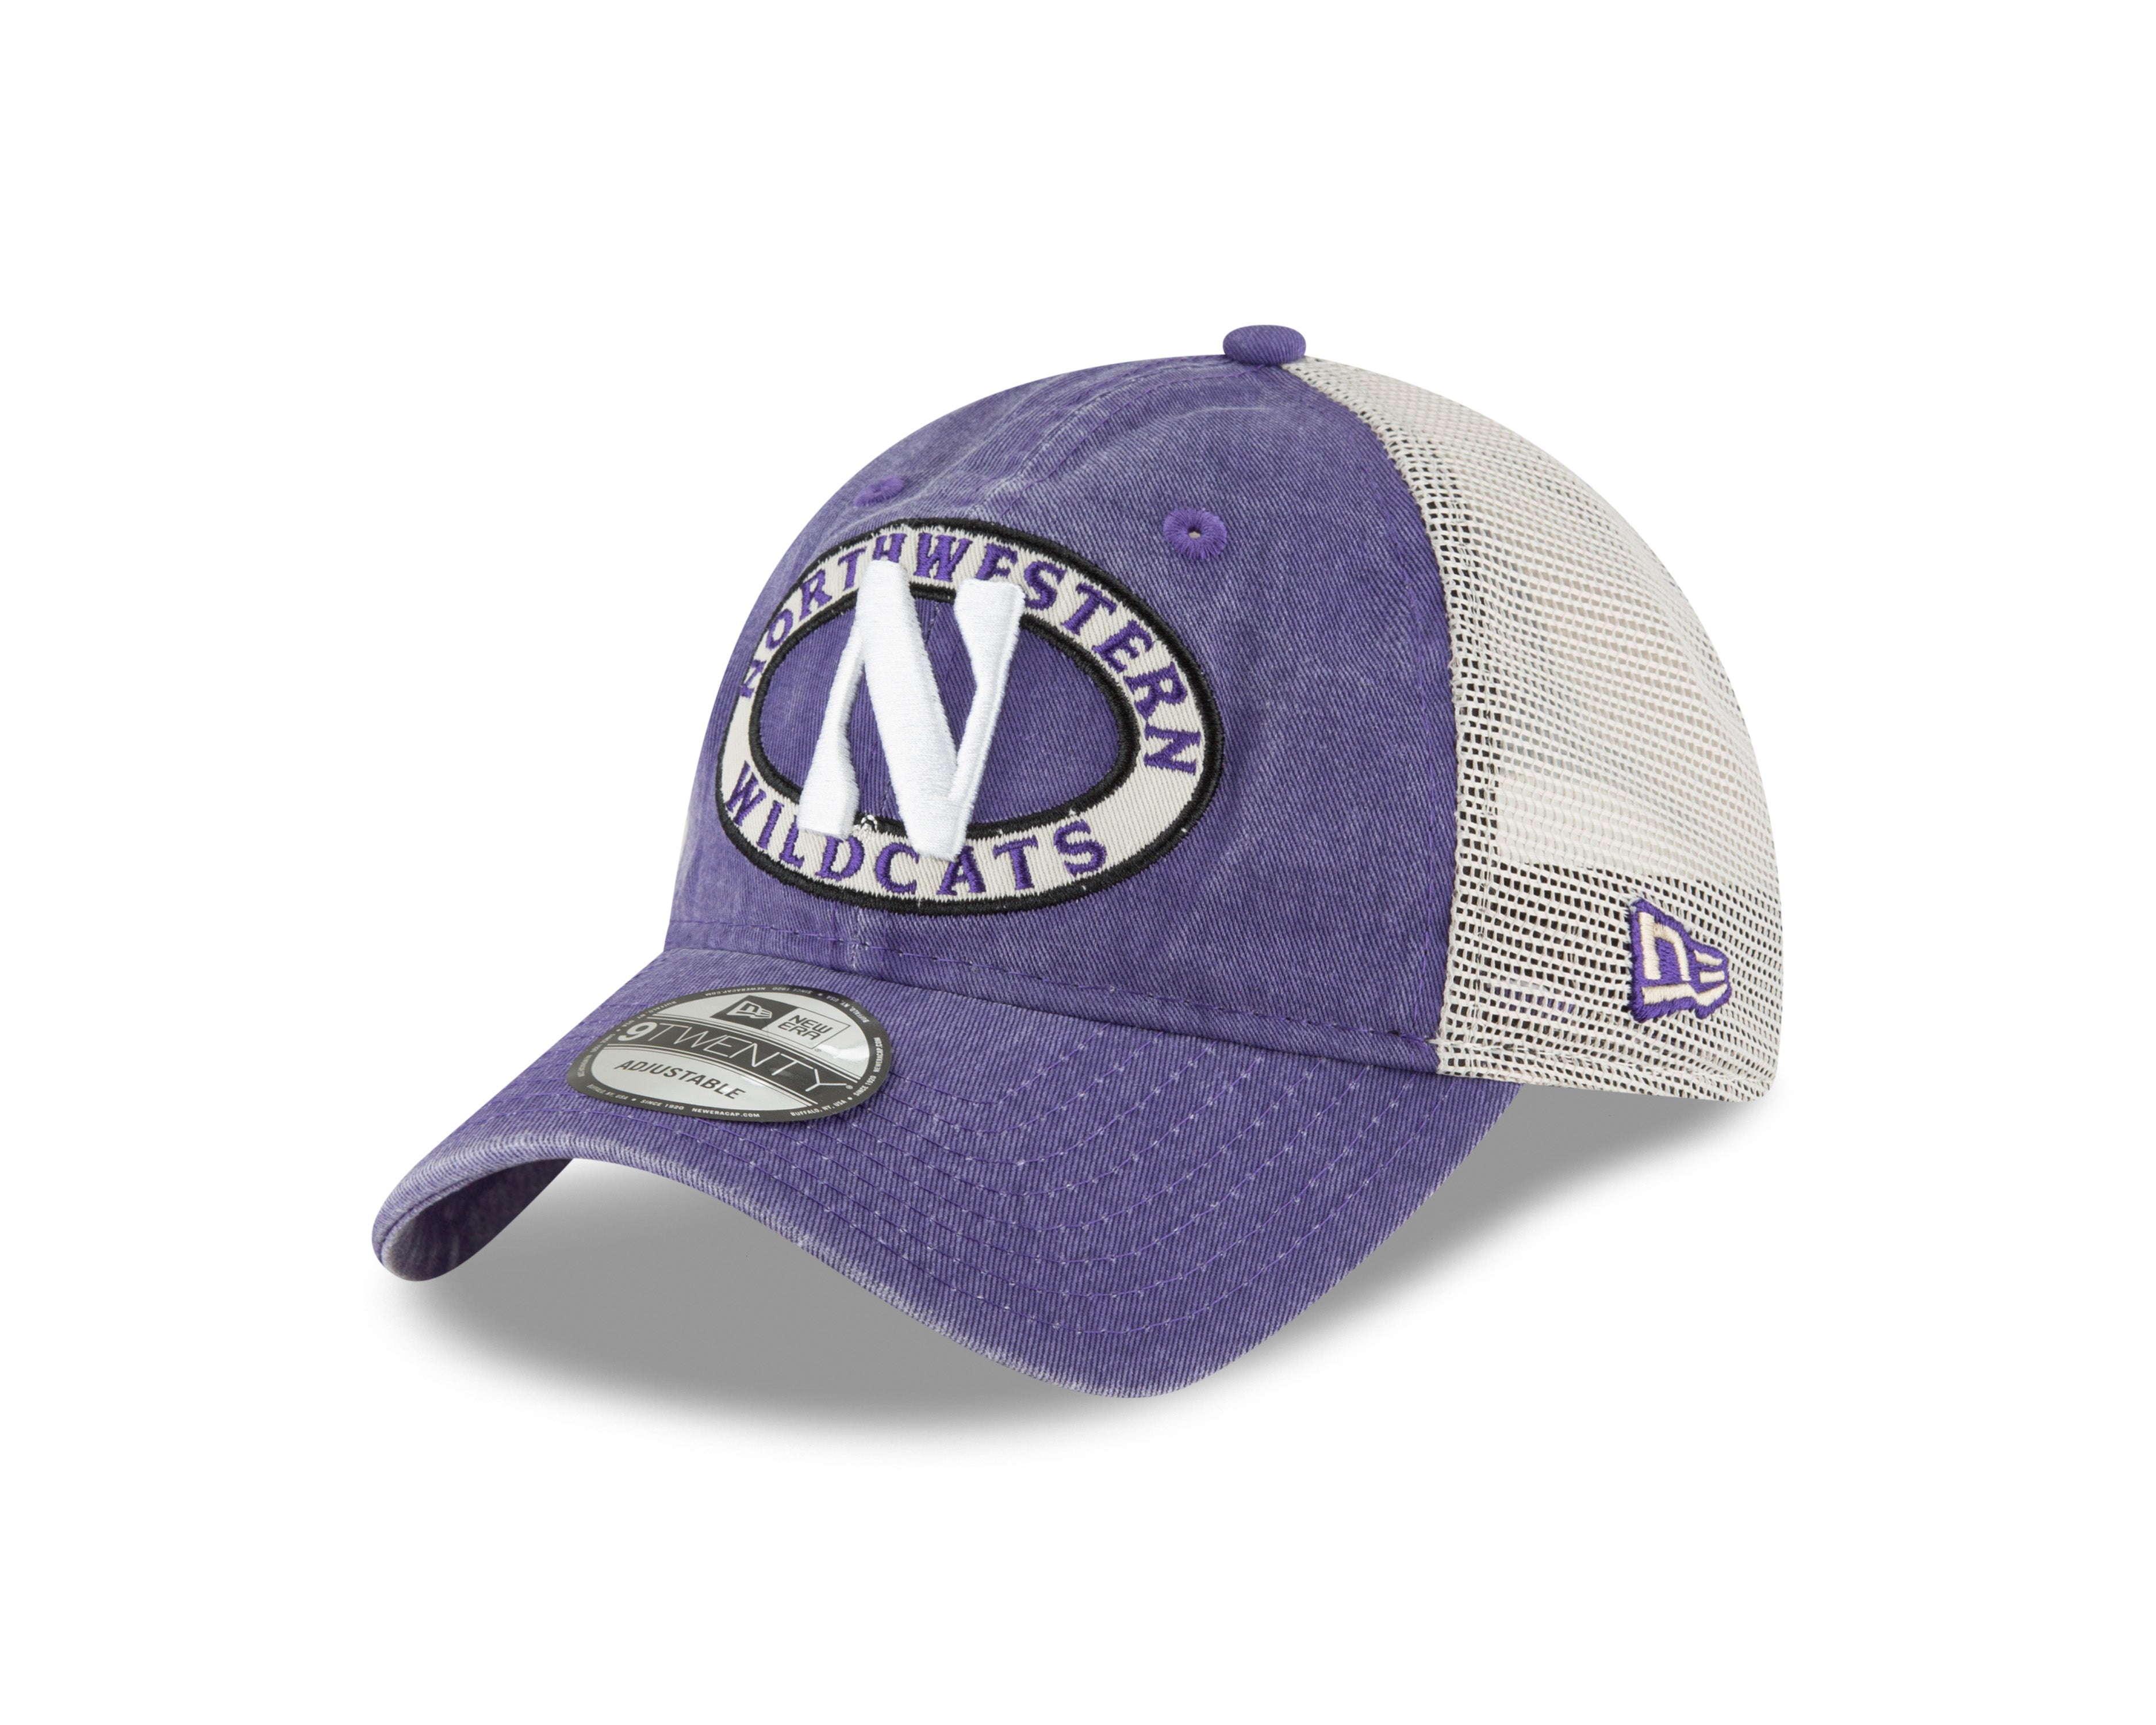 best website 75f53 3f6ad Northwestern Wildcats Patched Cap – Northwestern Official Store